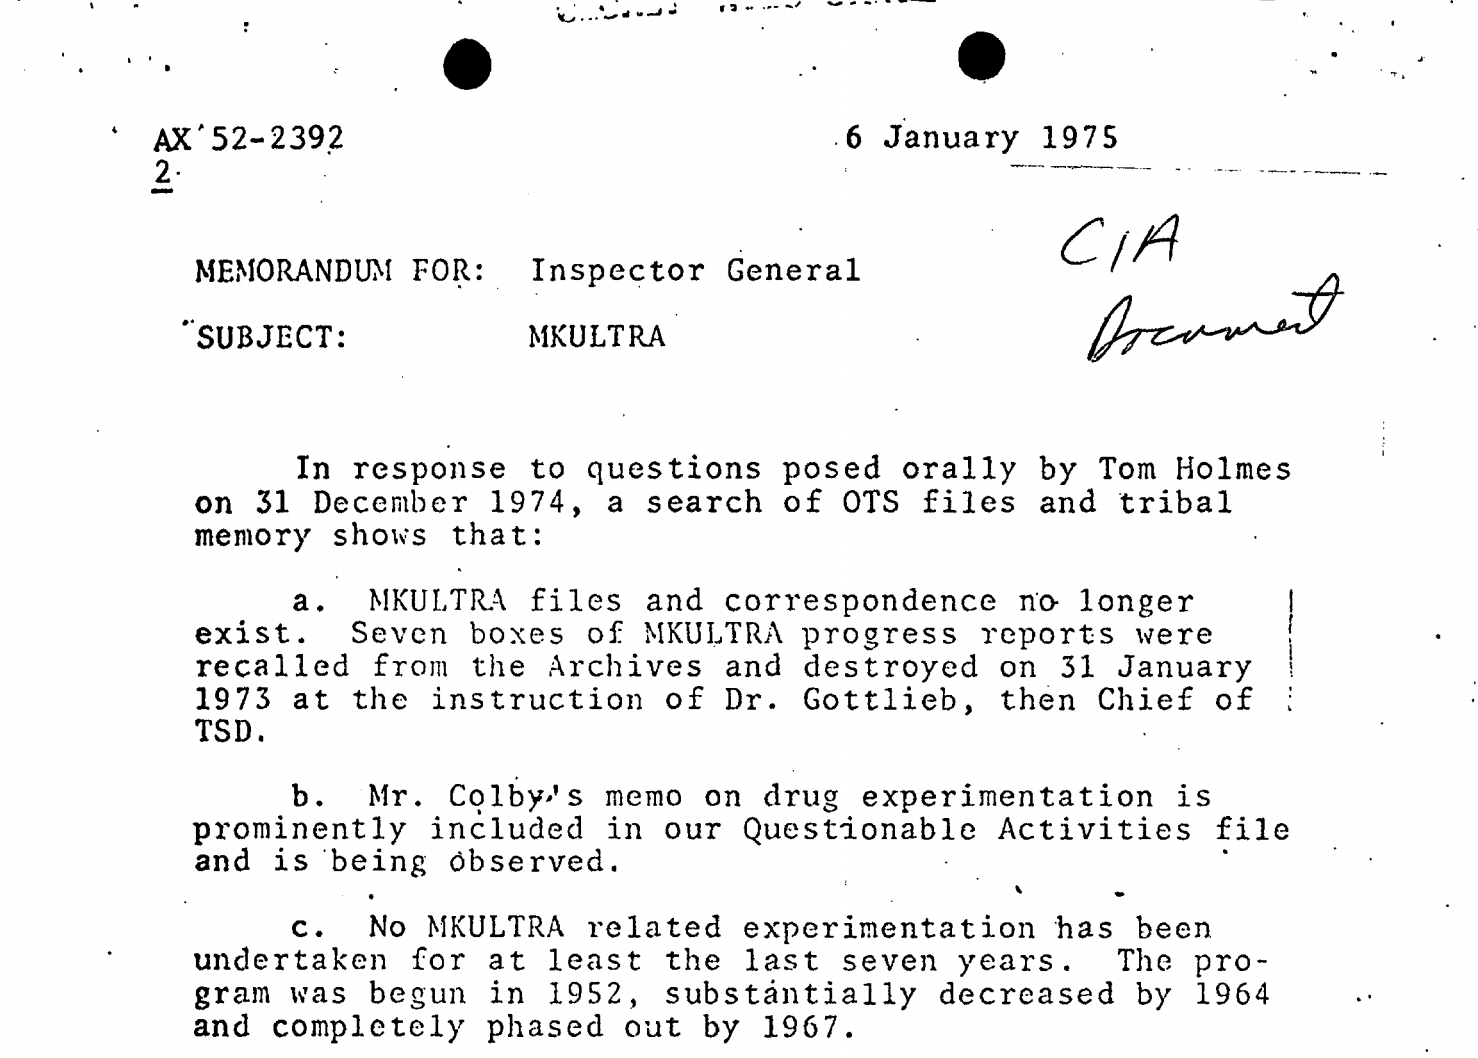 Government document showing details about the MKULTRA project